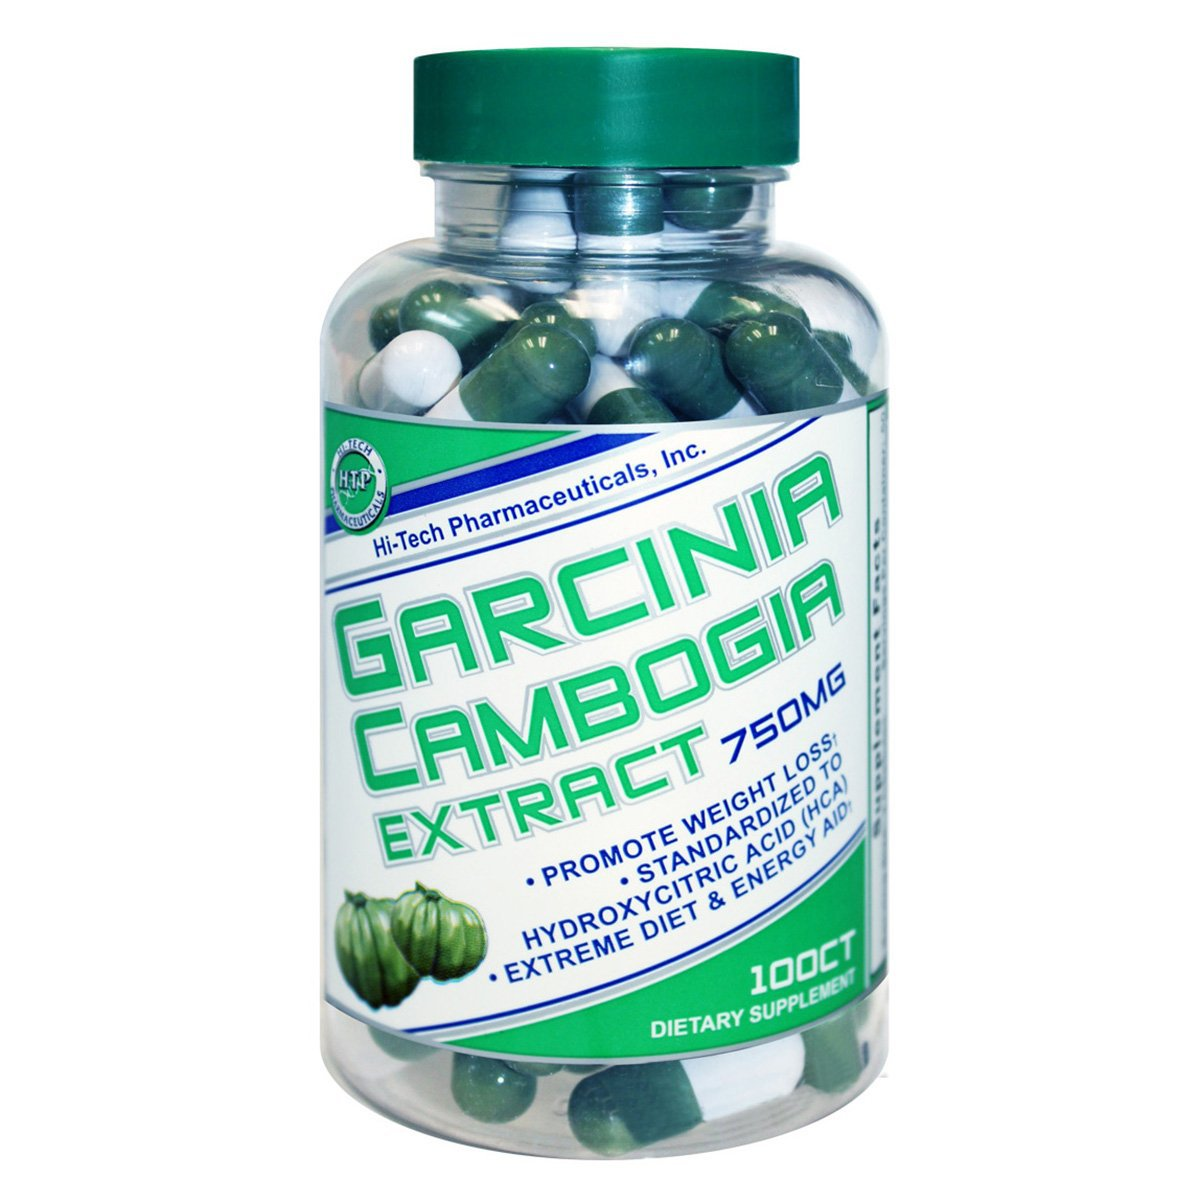 Hi Tech Pharmaceuticals Garcinia Cambogia Hca Weight Loss